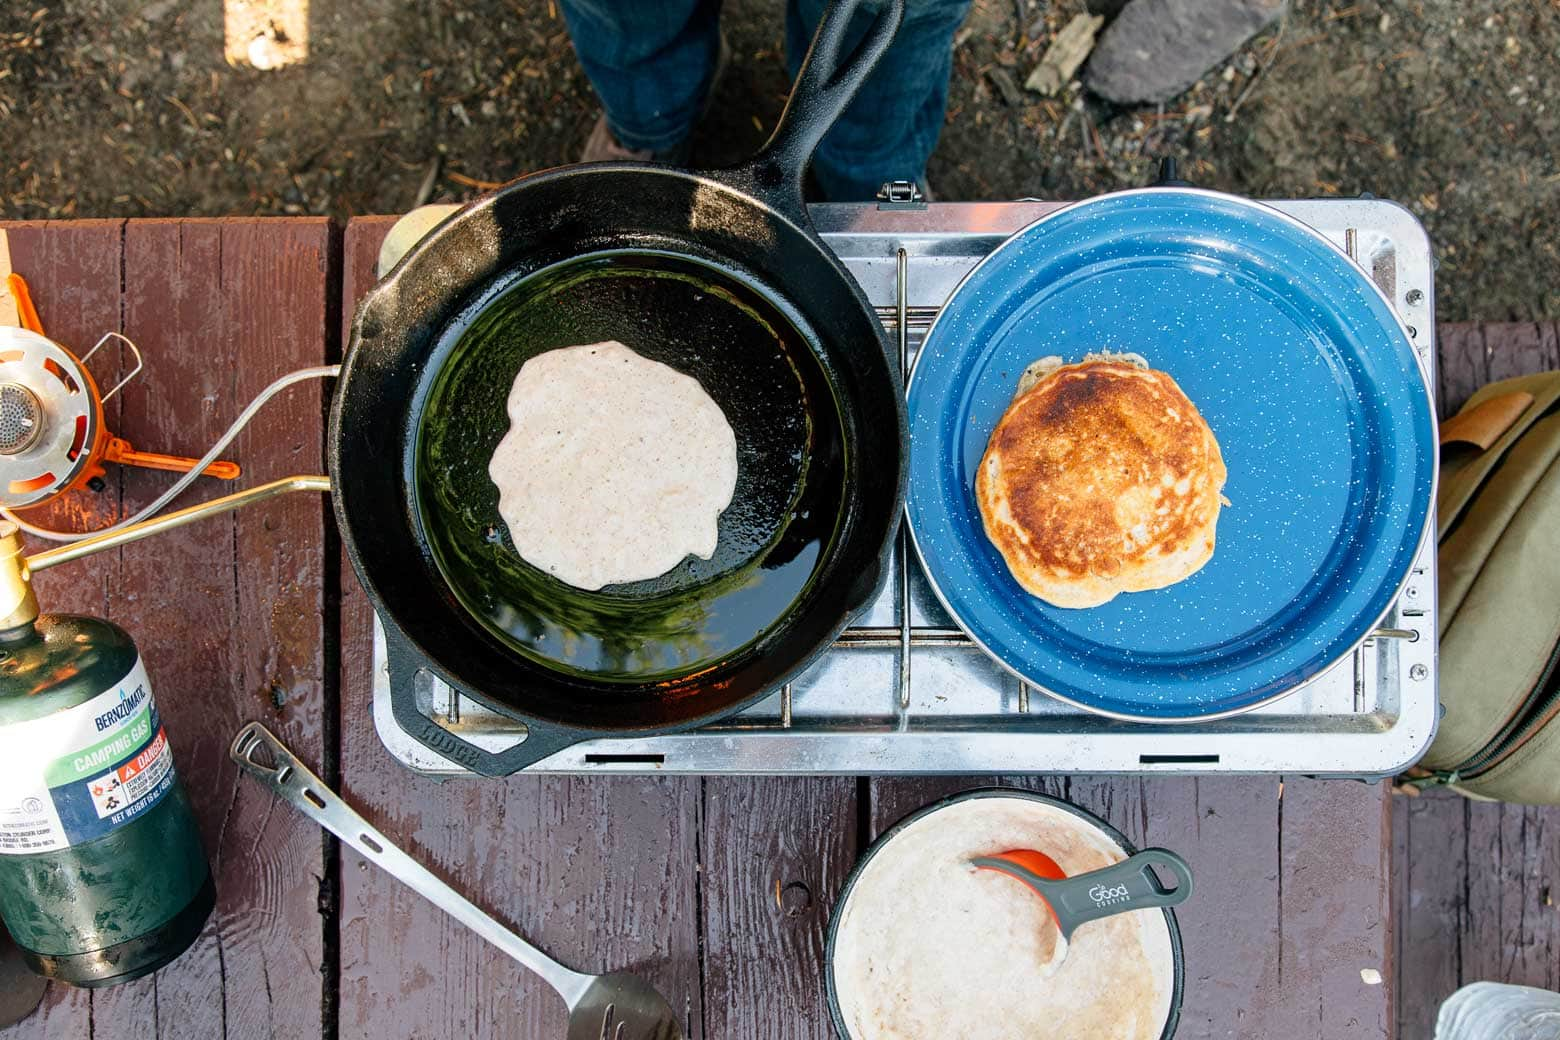 Cooking pancakes in a skillet on a camping stove